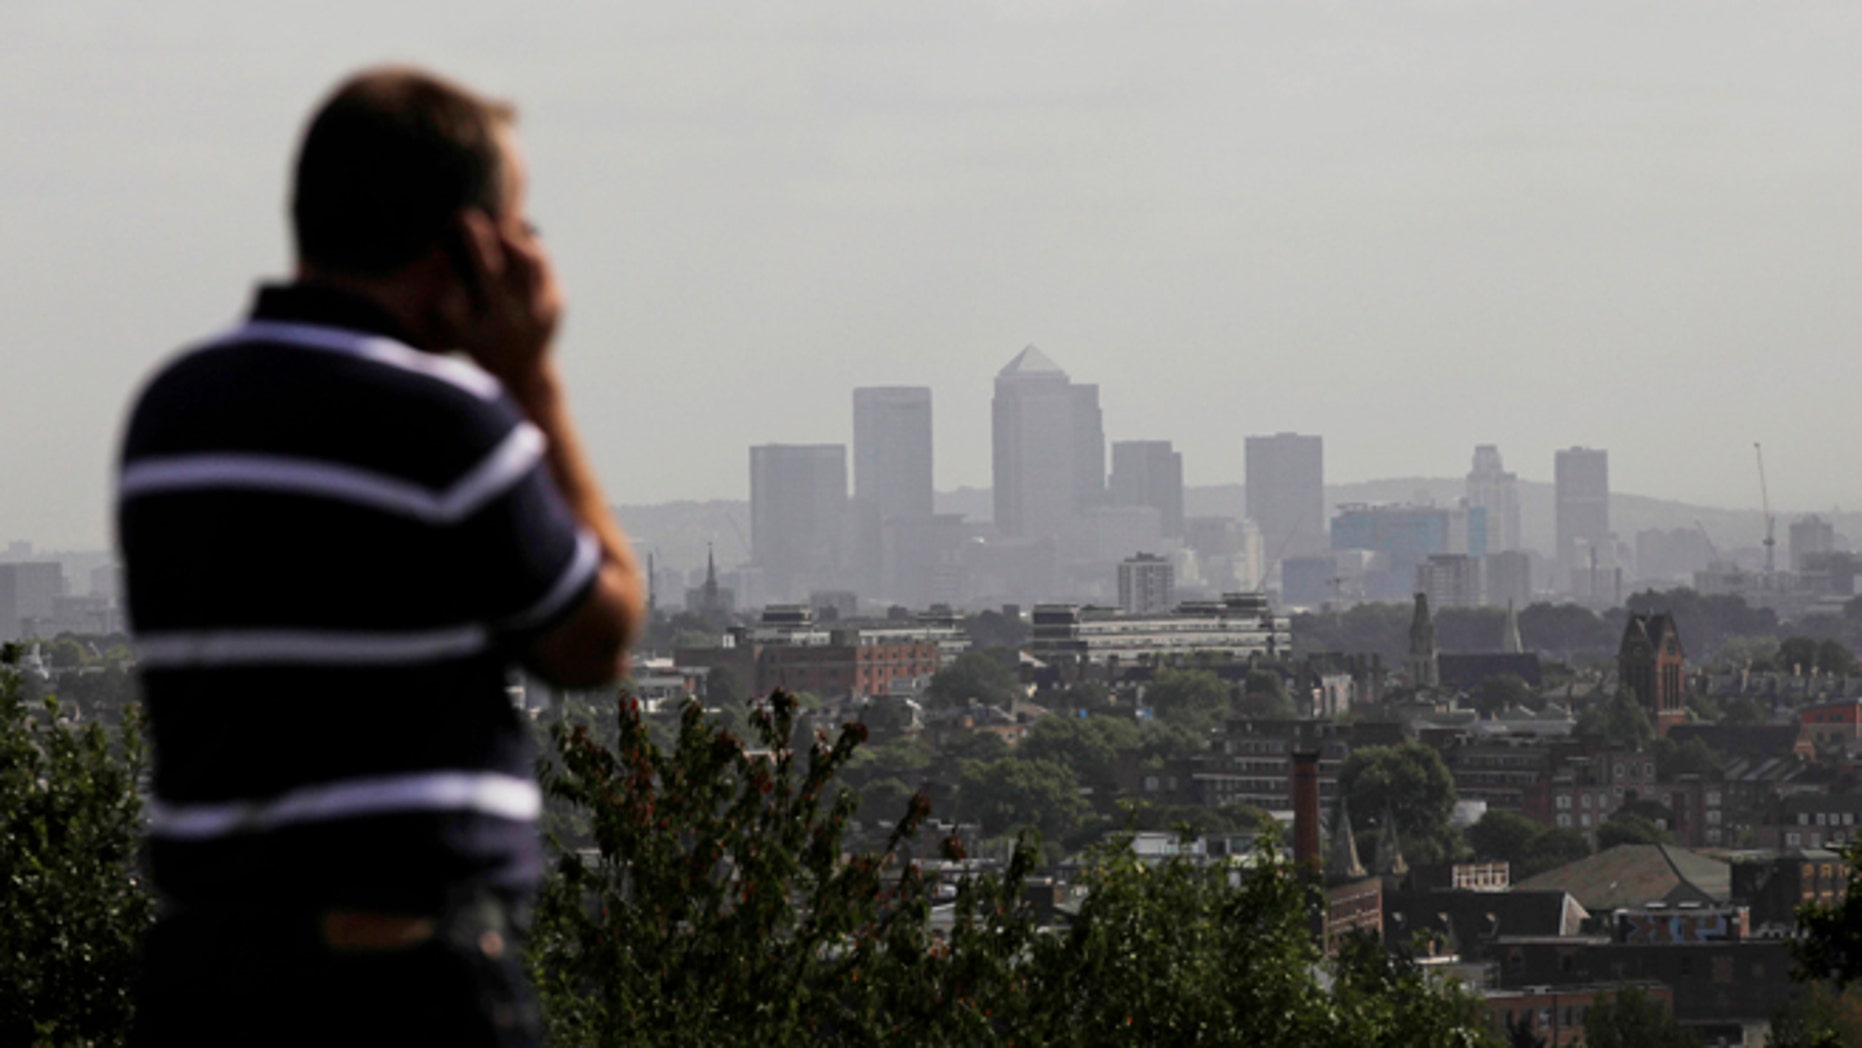 FILE In this Friday, Sept. 23, 2011 file photo a man talks on a mobile phone as the hi-rise buildings of the banks based in the Canary Wharf business district are seen in the distance from Parliament Hill on Hampstead Heath in London.